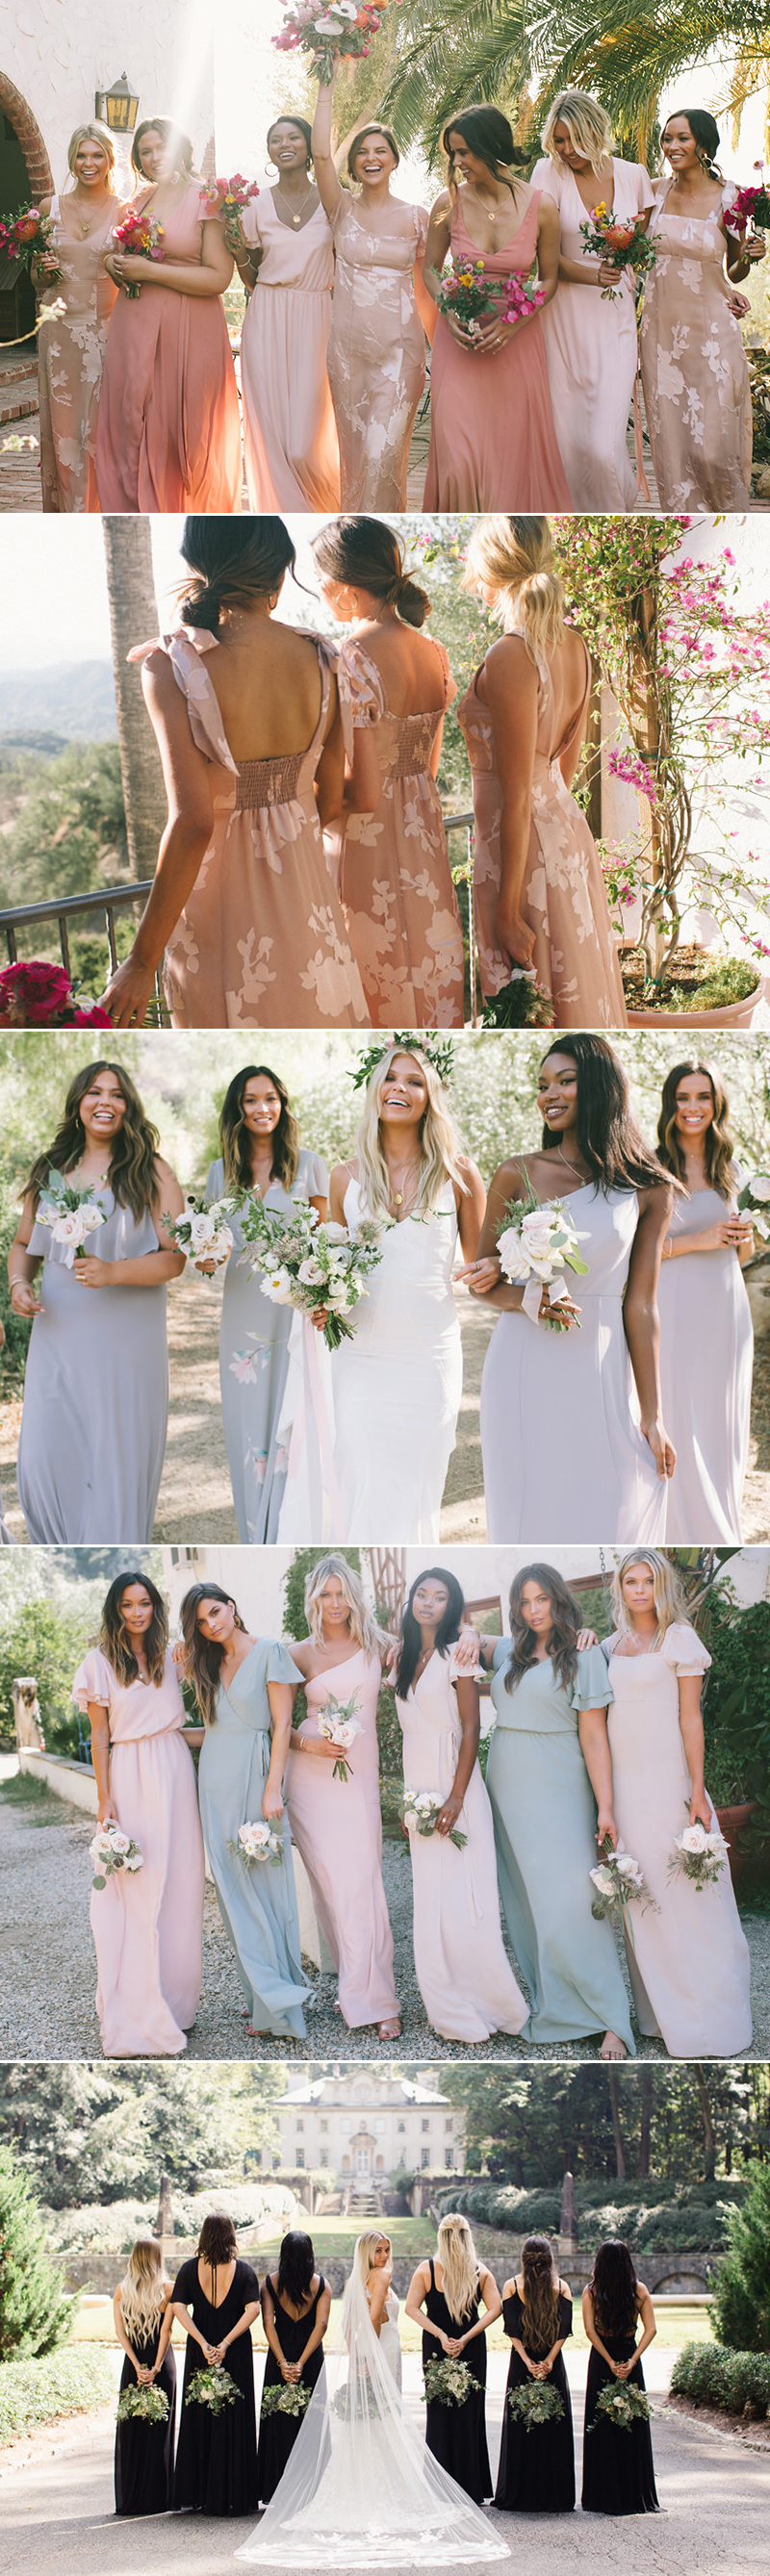 Indie Bridesmaid Dresses that Don't Look Like Bridesmaid Dresses